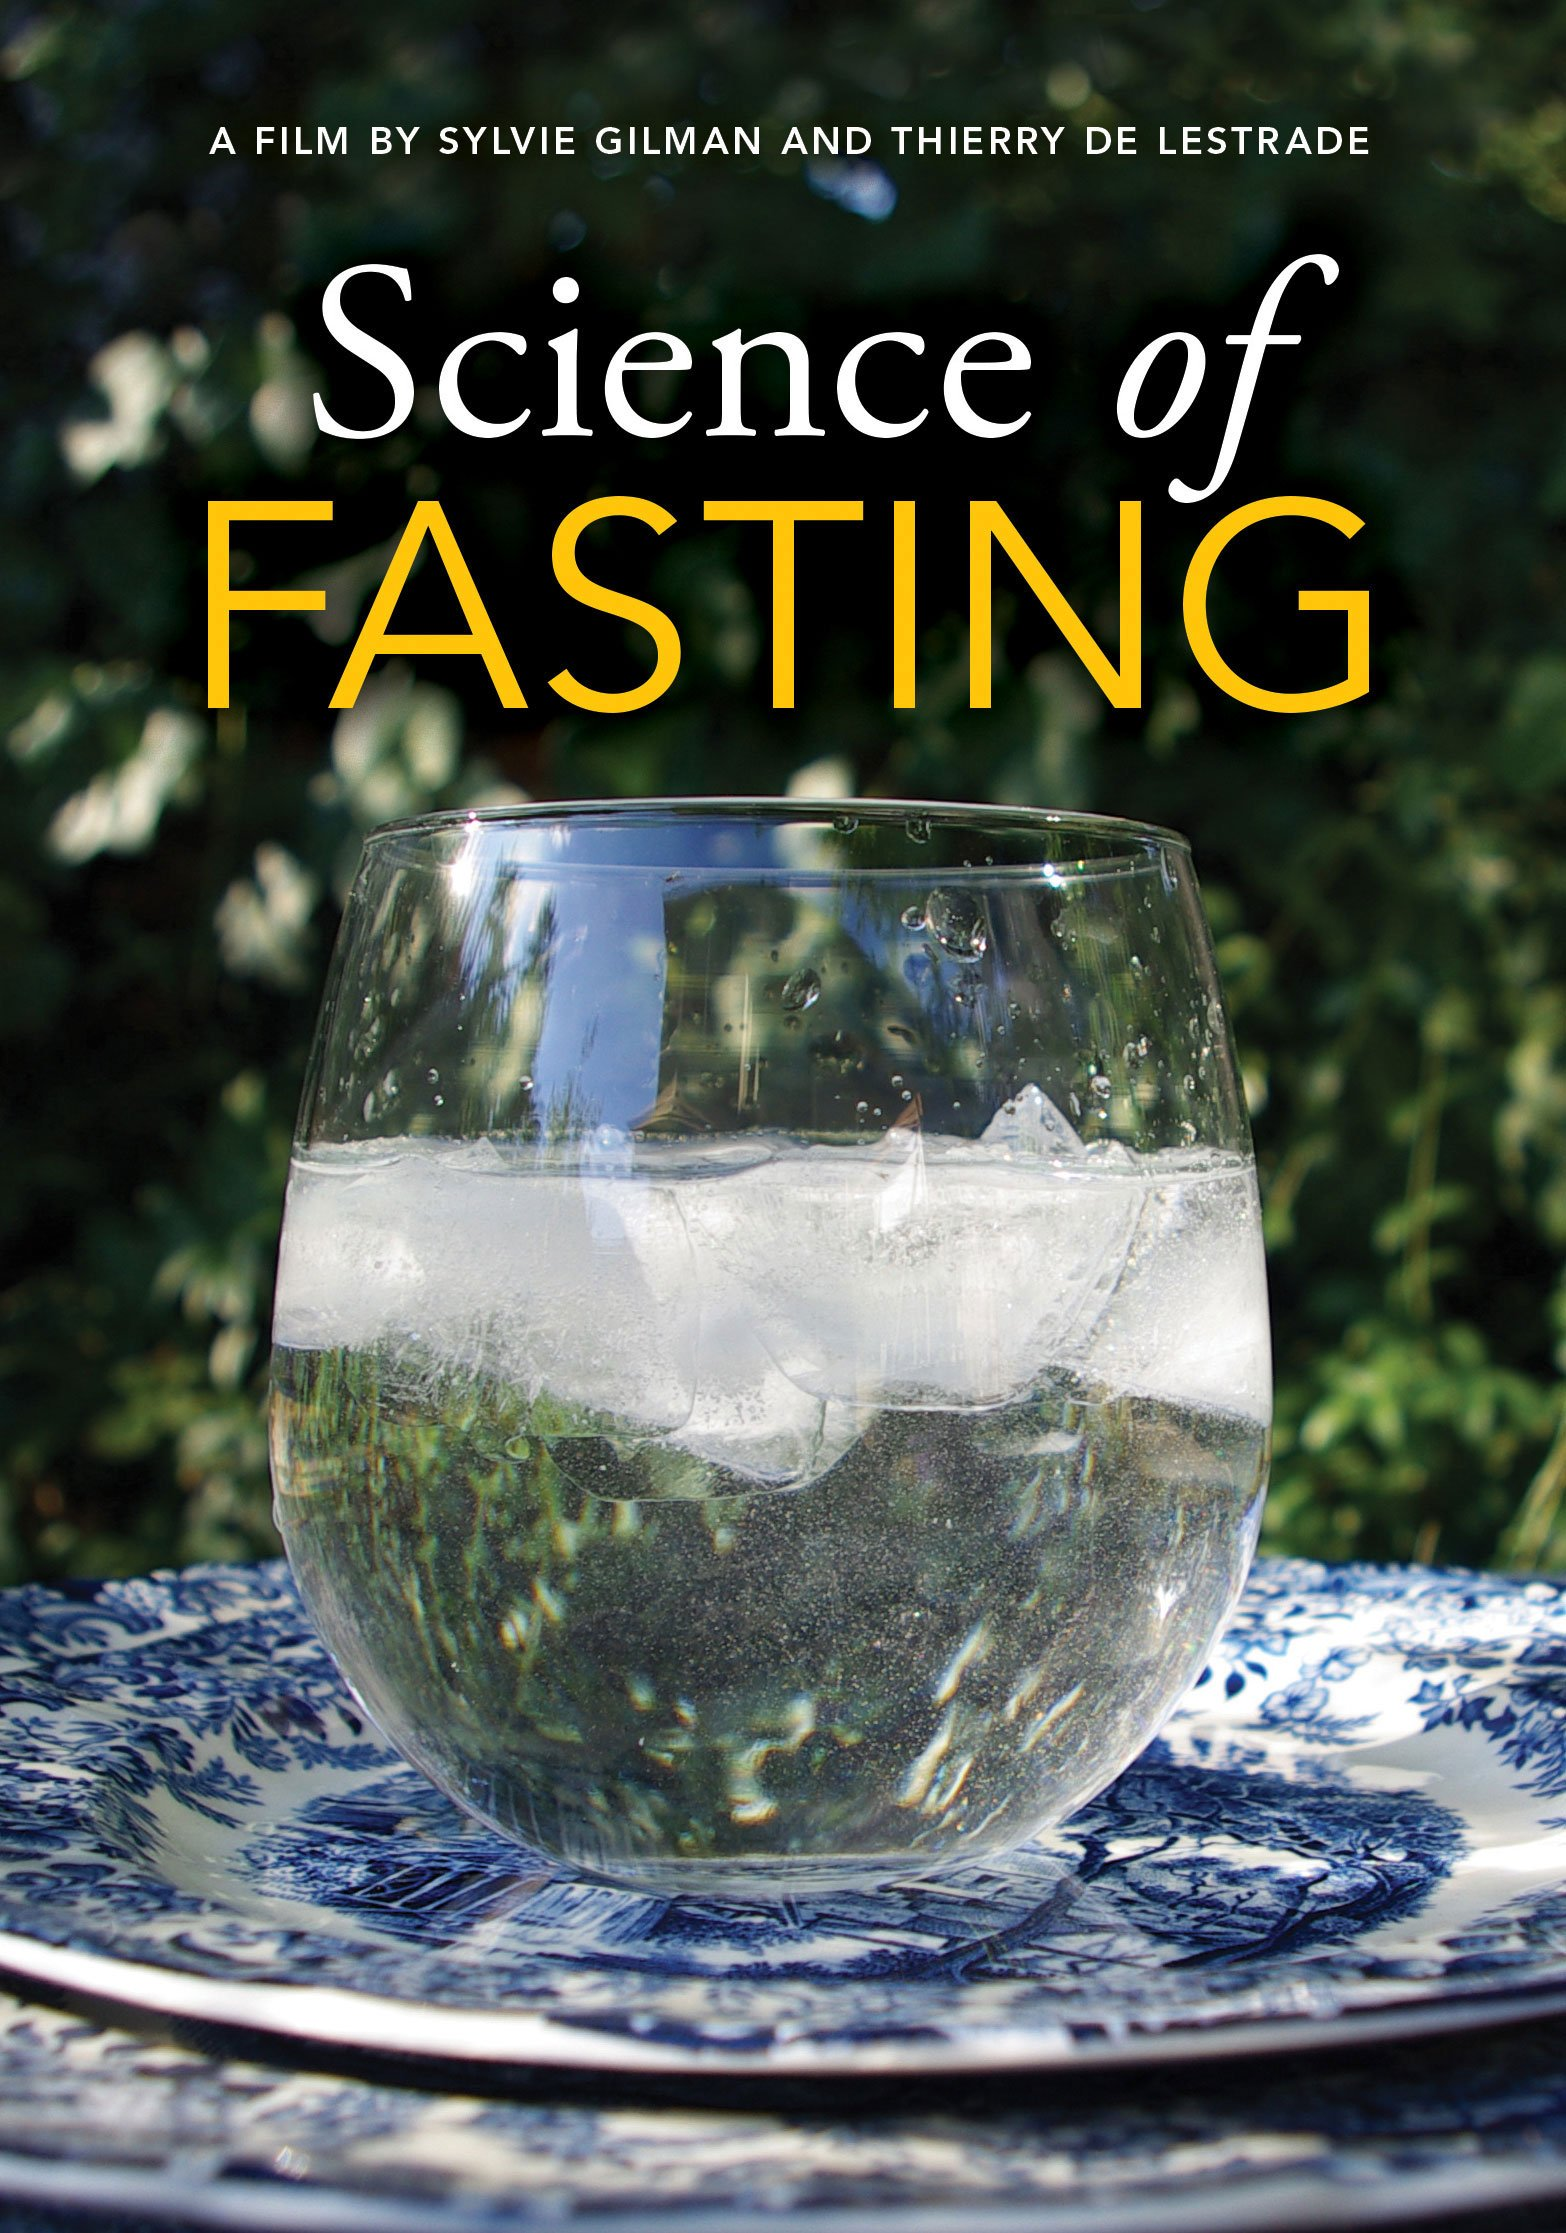 The Science of Fasting DVD